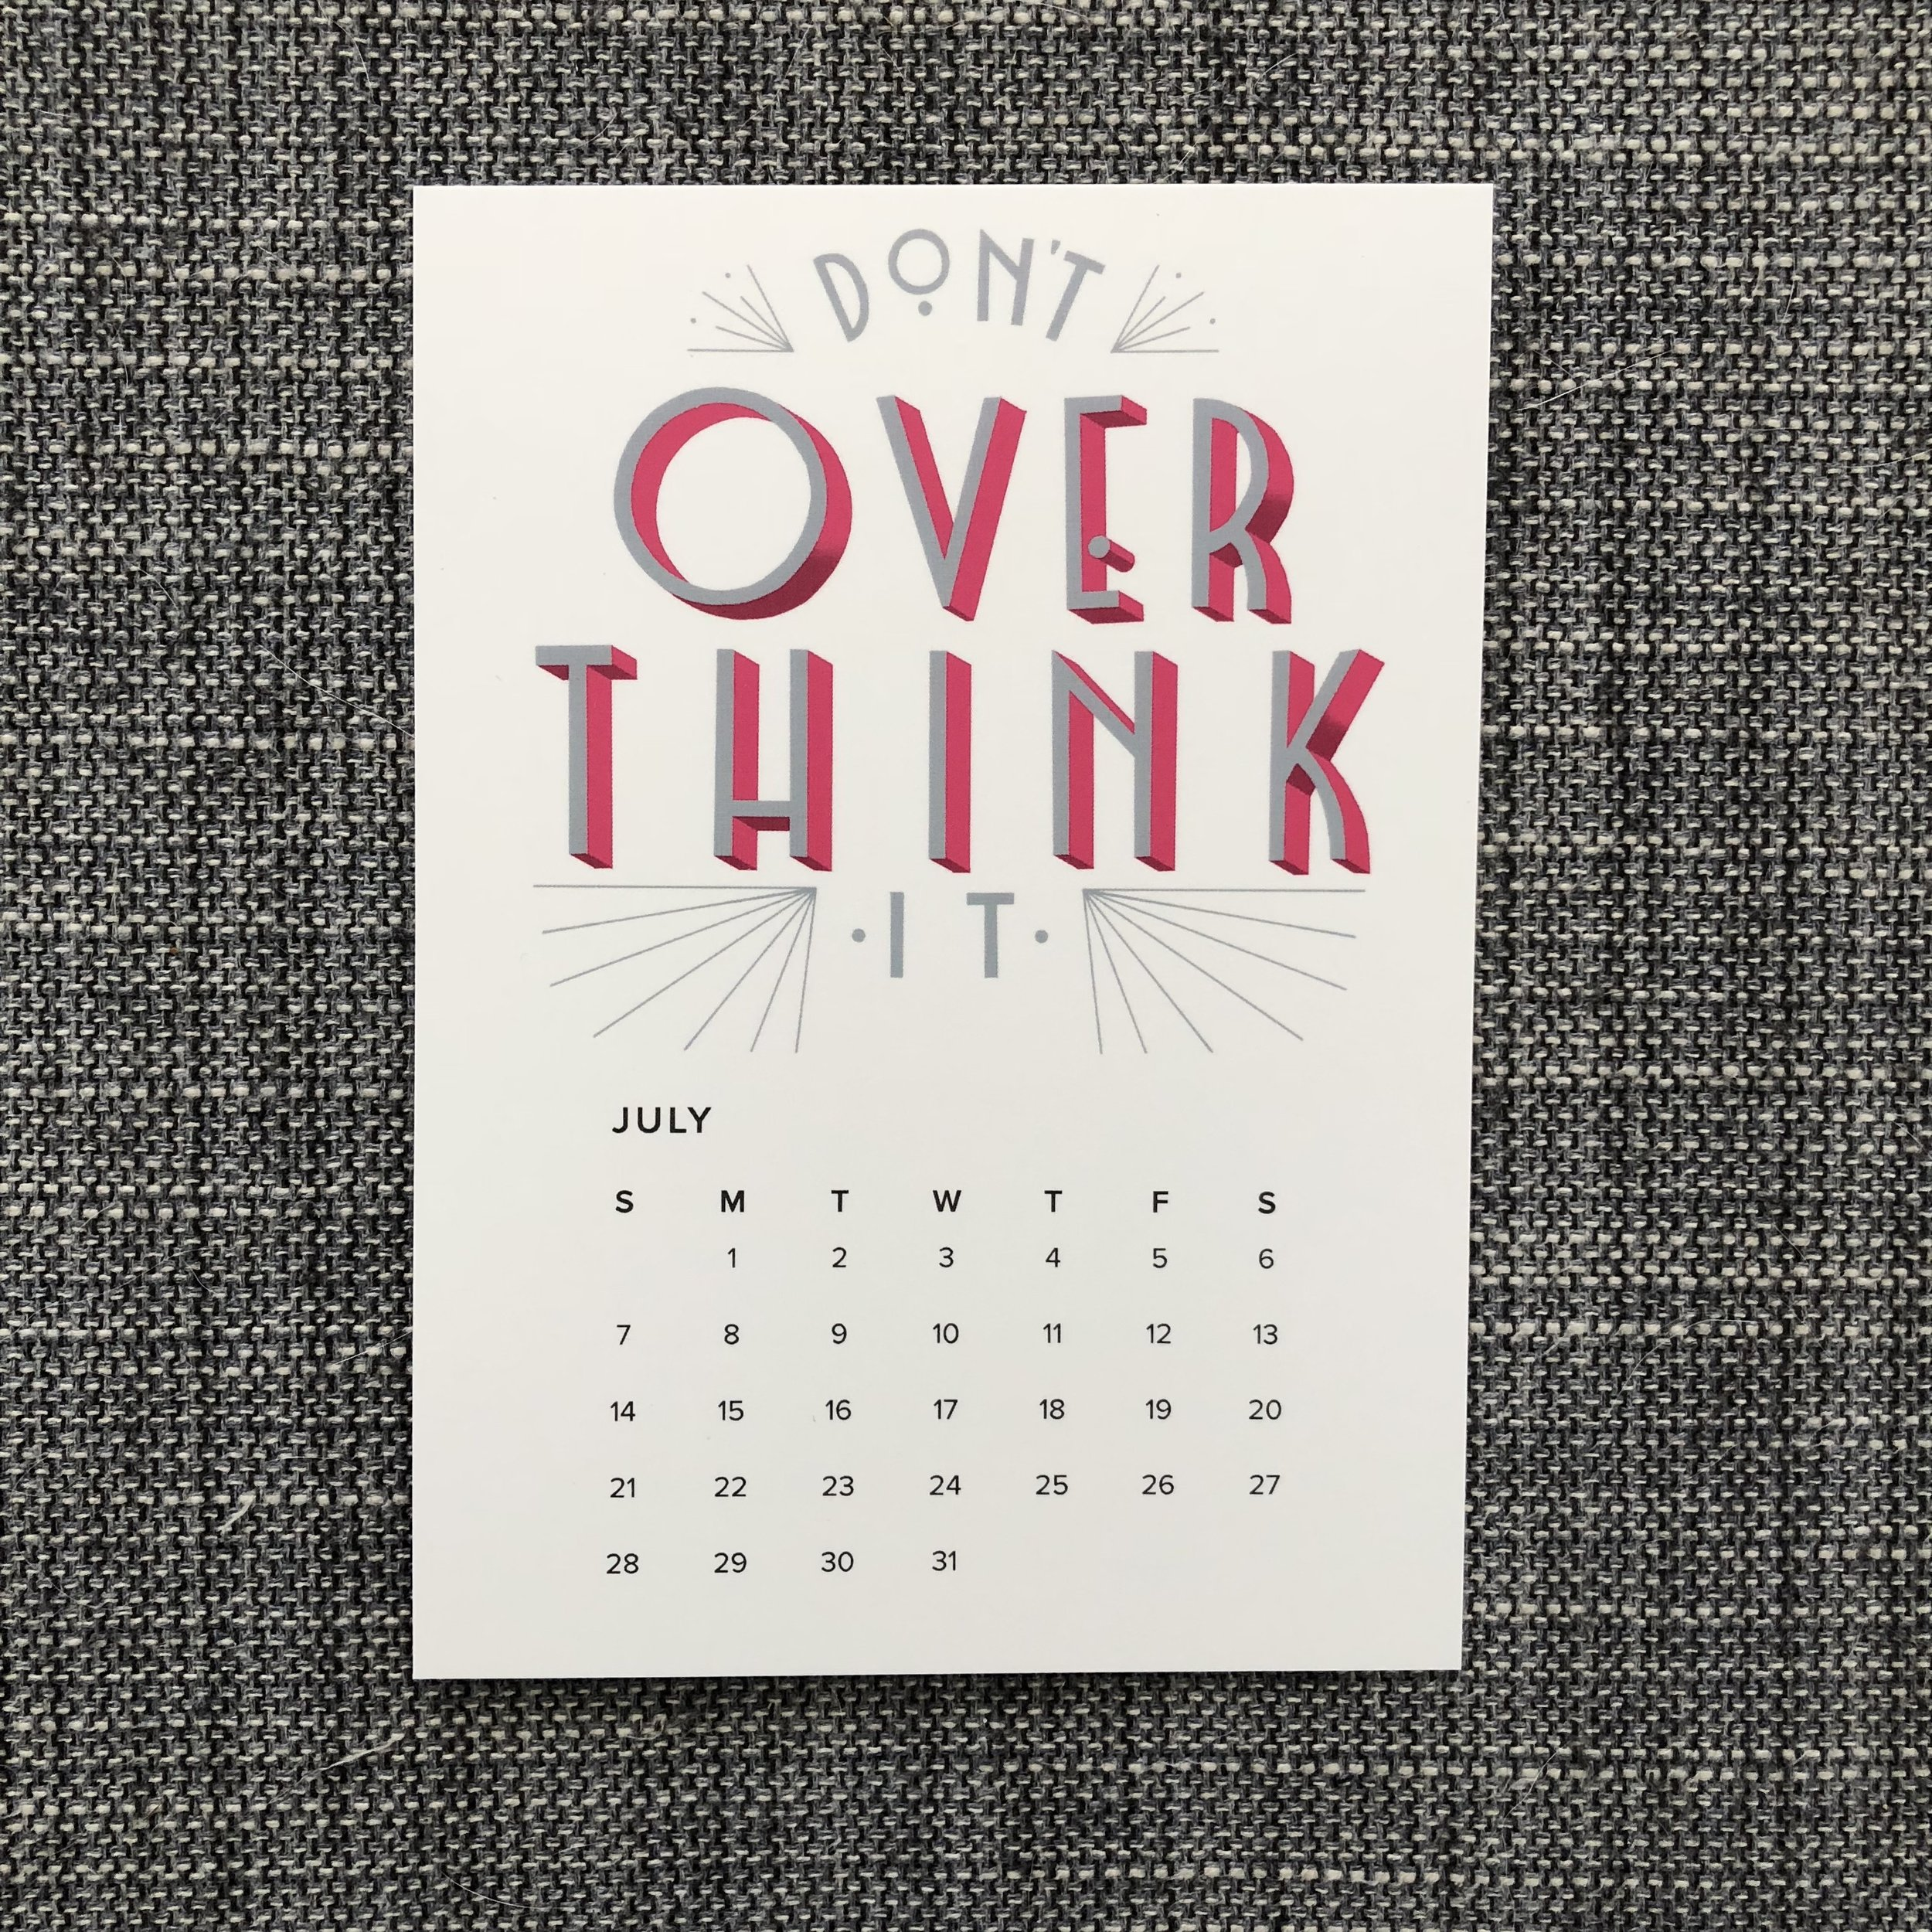 Submit a quote - Got an idea for a quote to be included in the 2020 Motivate Your Ass Calendar?